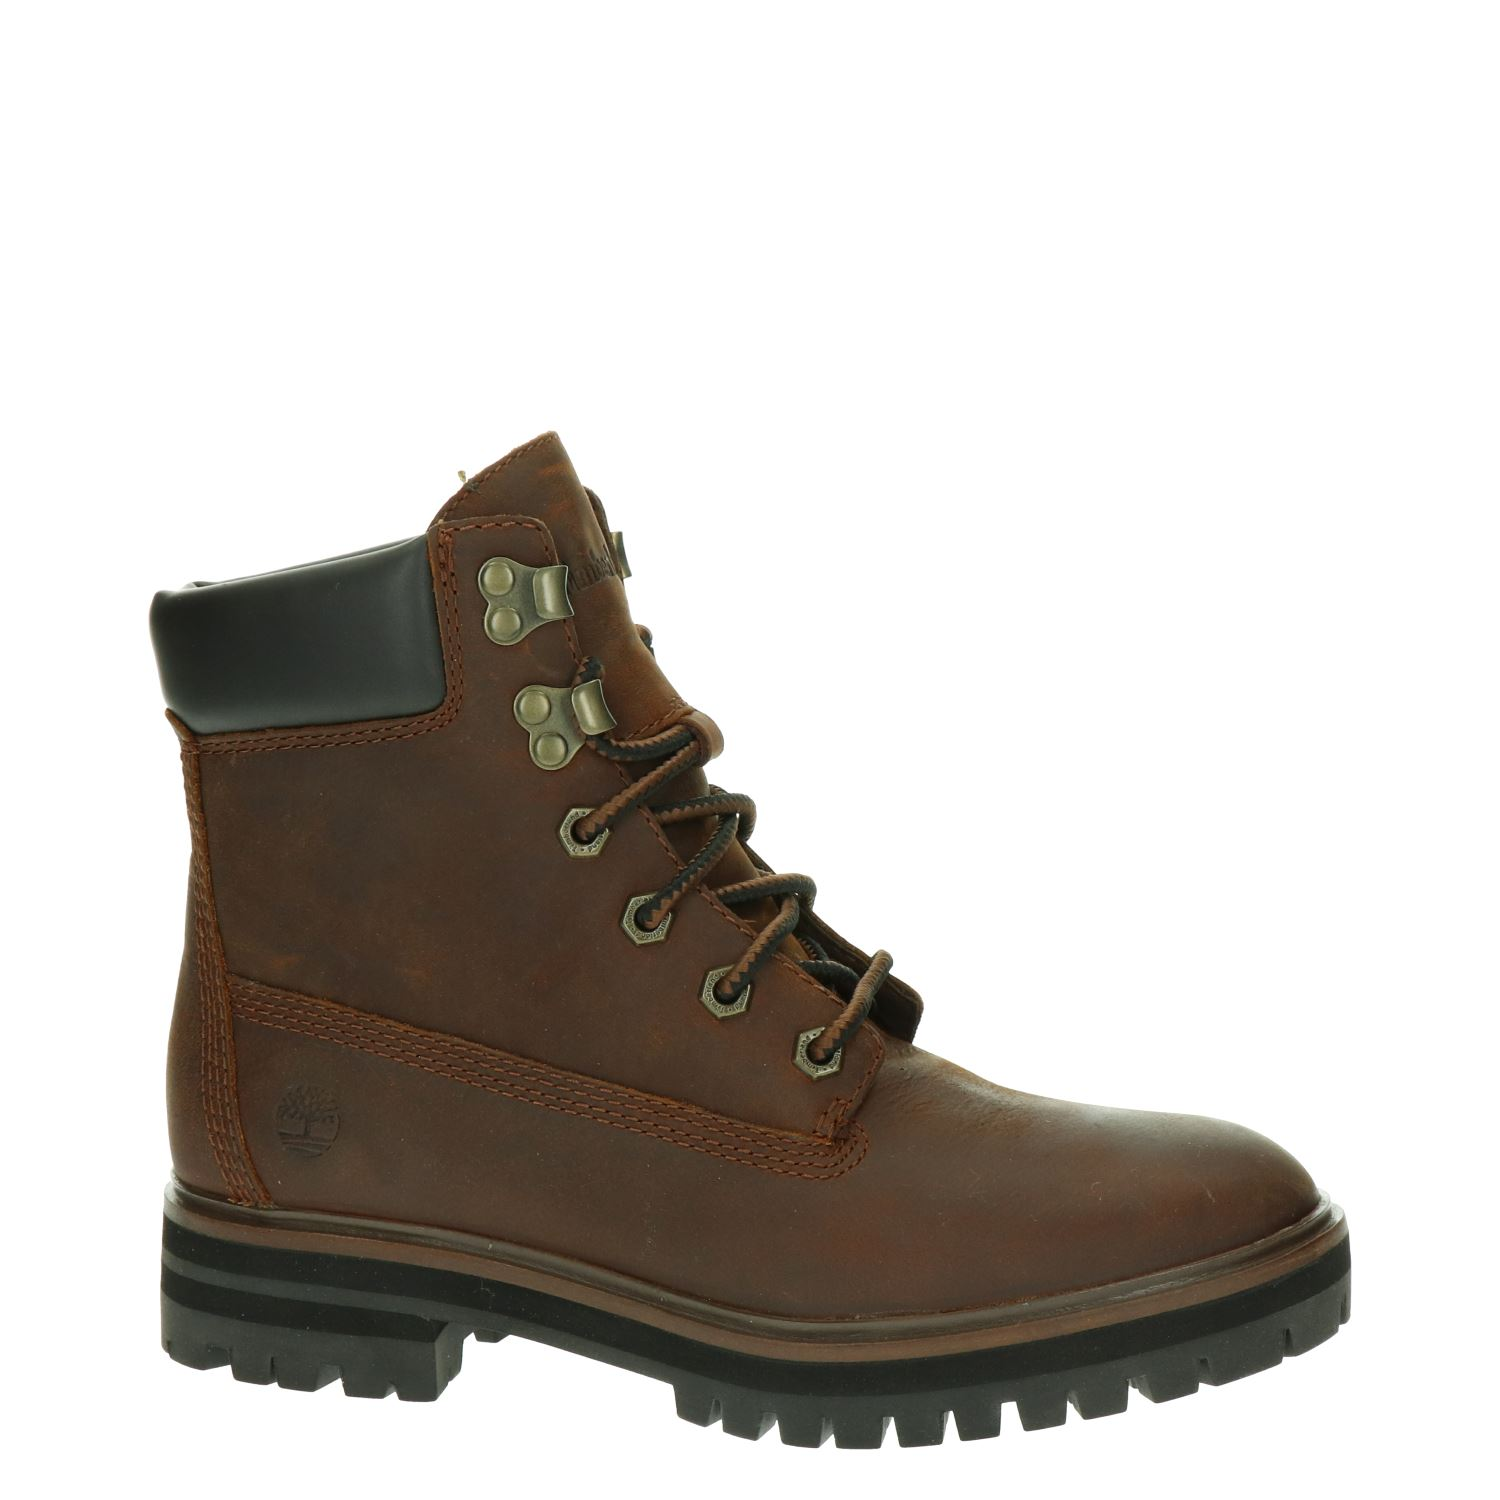 Timberland London Square 6 Inch